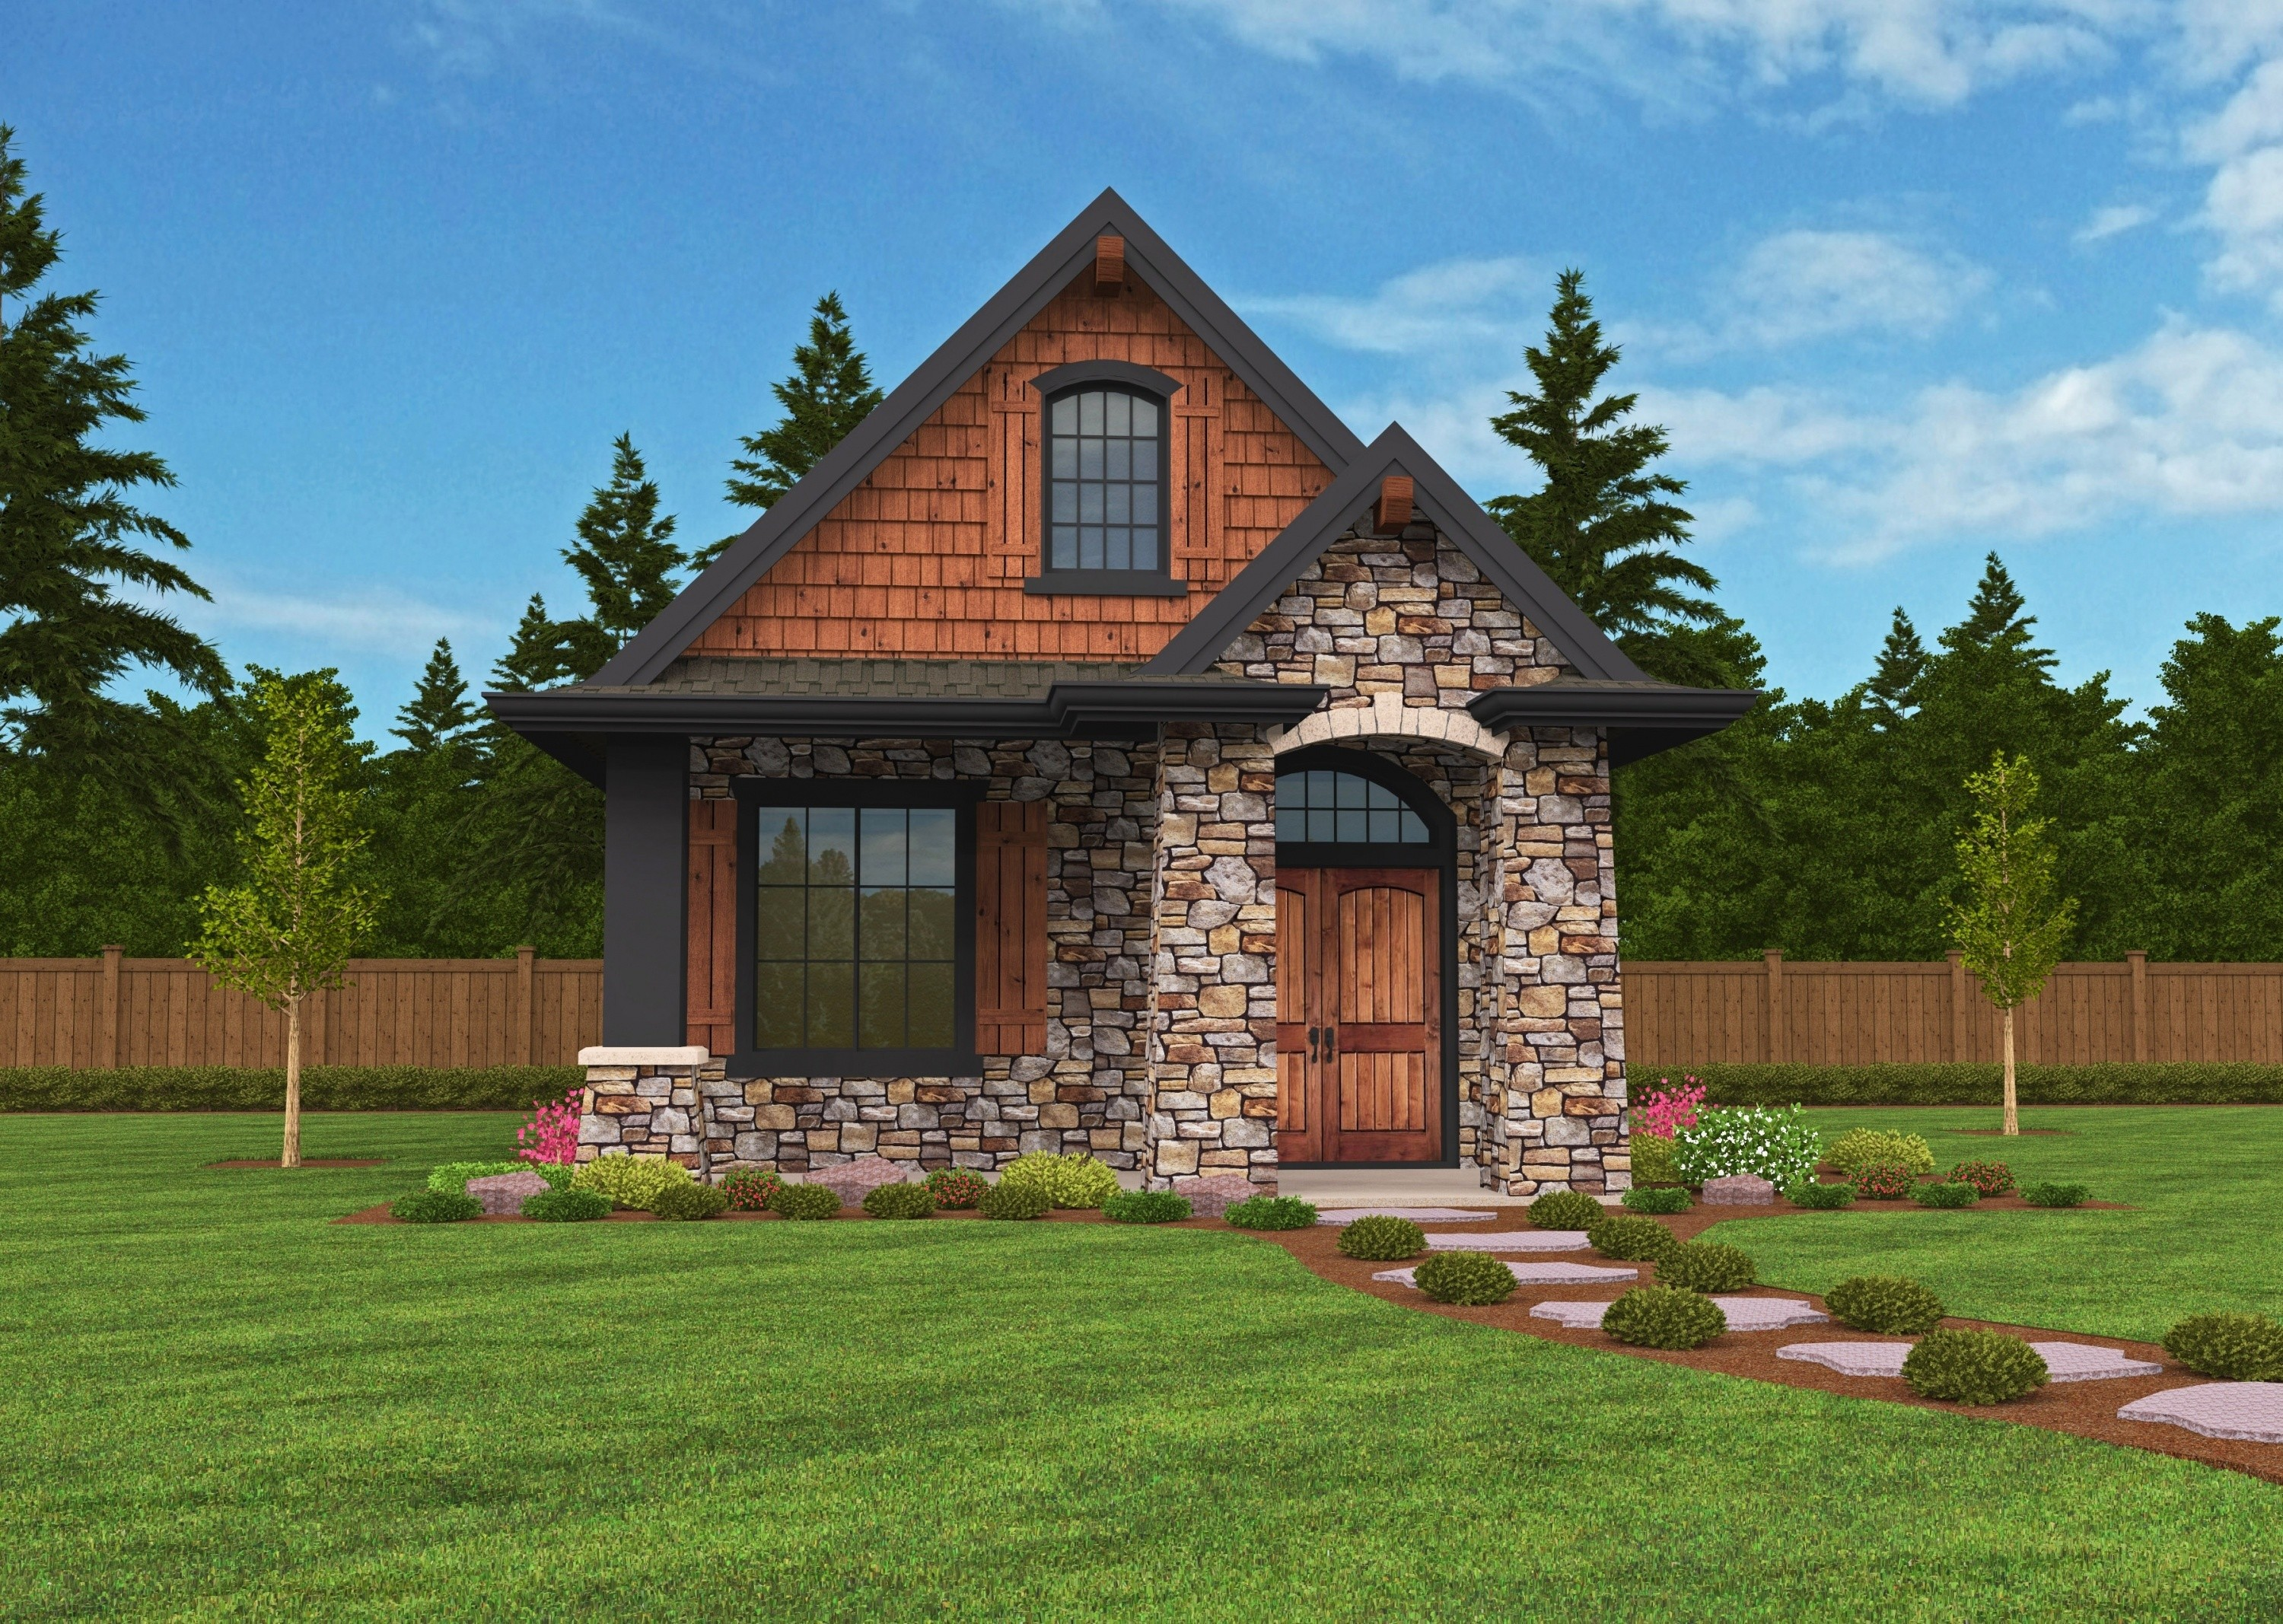 Montana House Plan | Small Lodge Home Design with European Flair